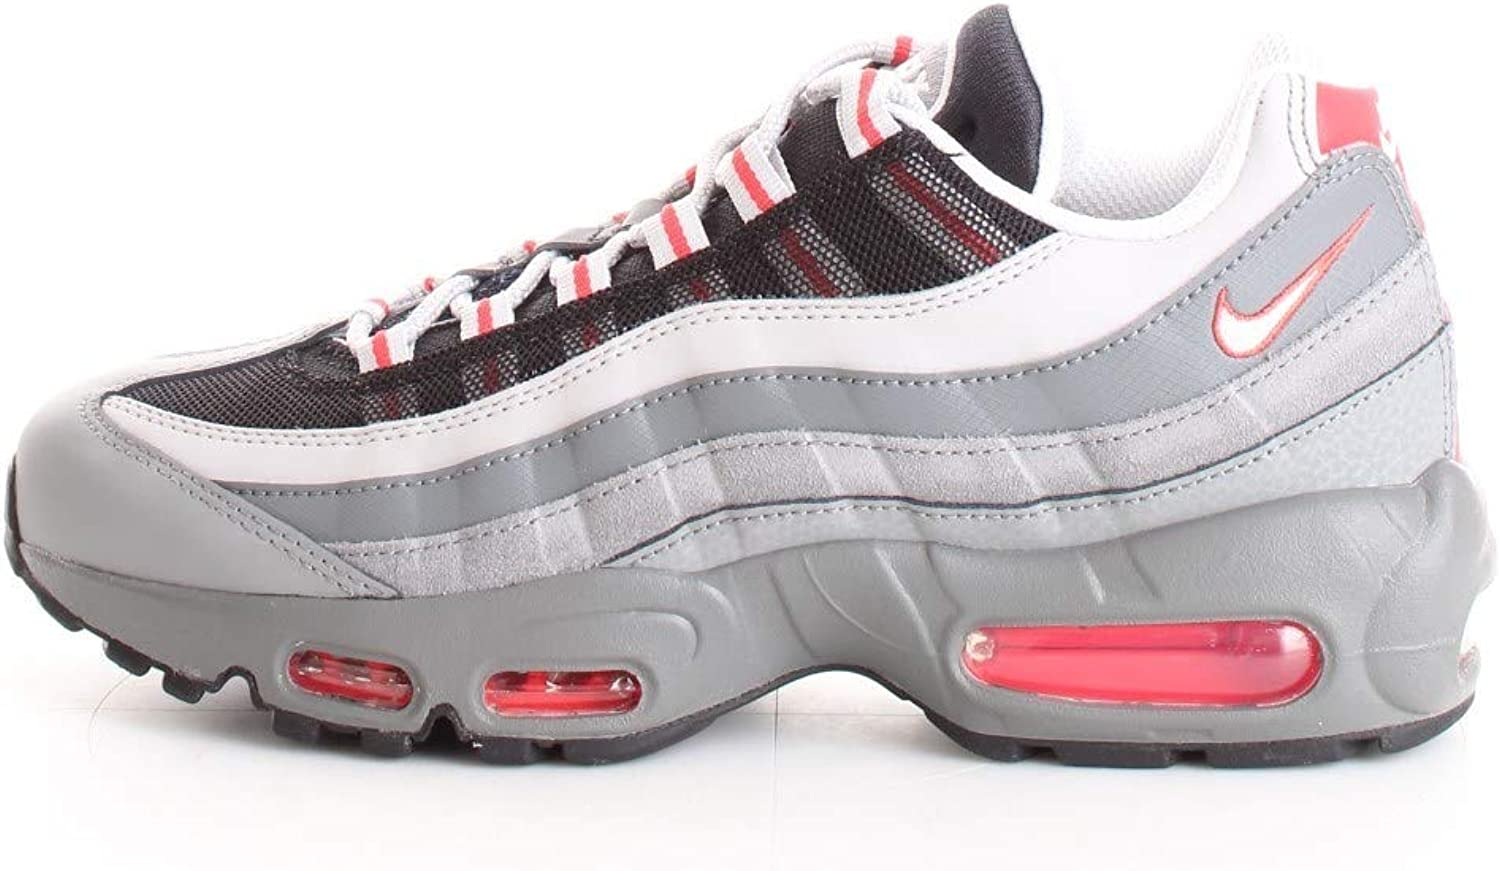 NIKE Air MAX 95 Essential, Zapatillas para Correr Unisex Adulto: Amazon.es: Zapatos y complementos